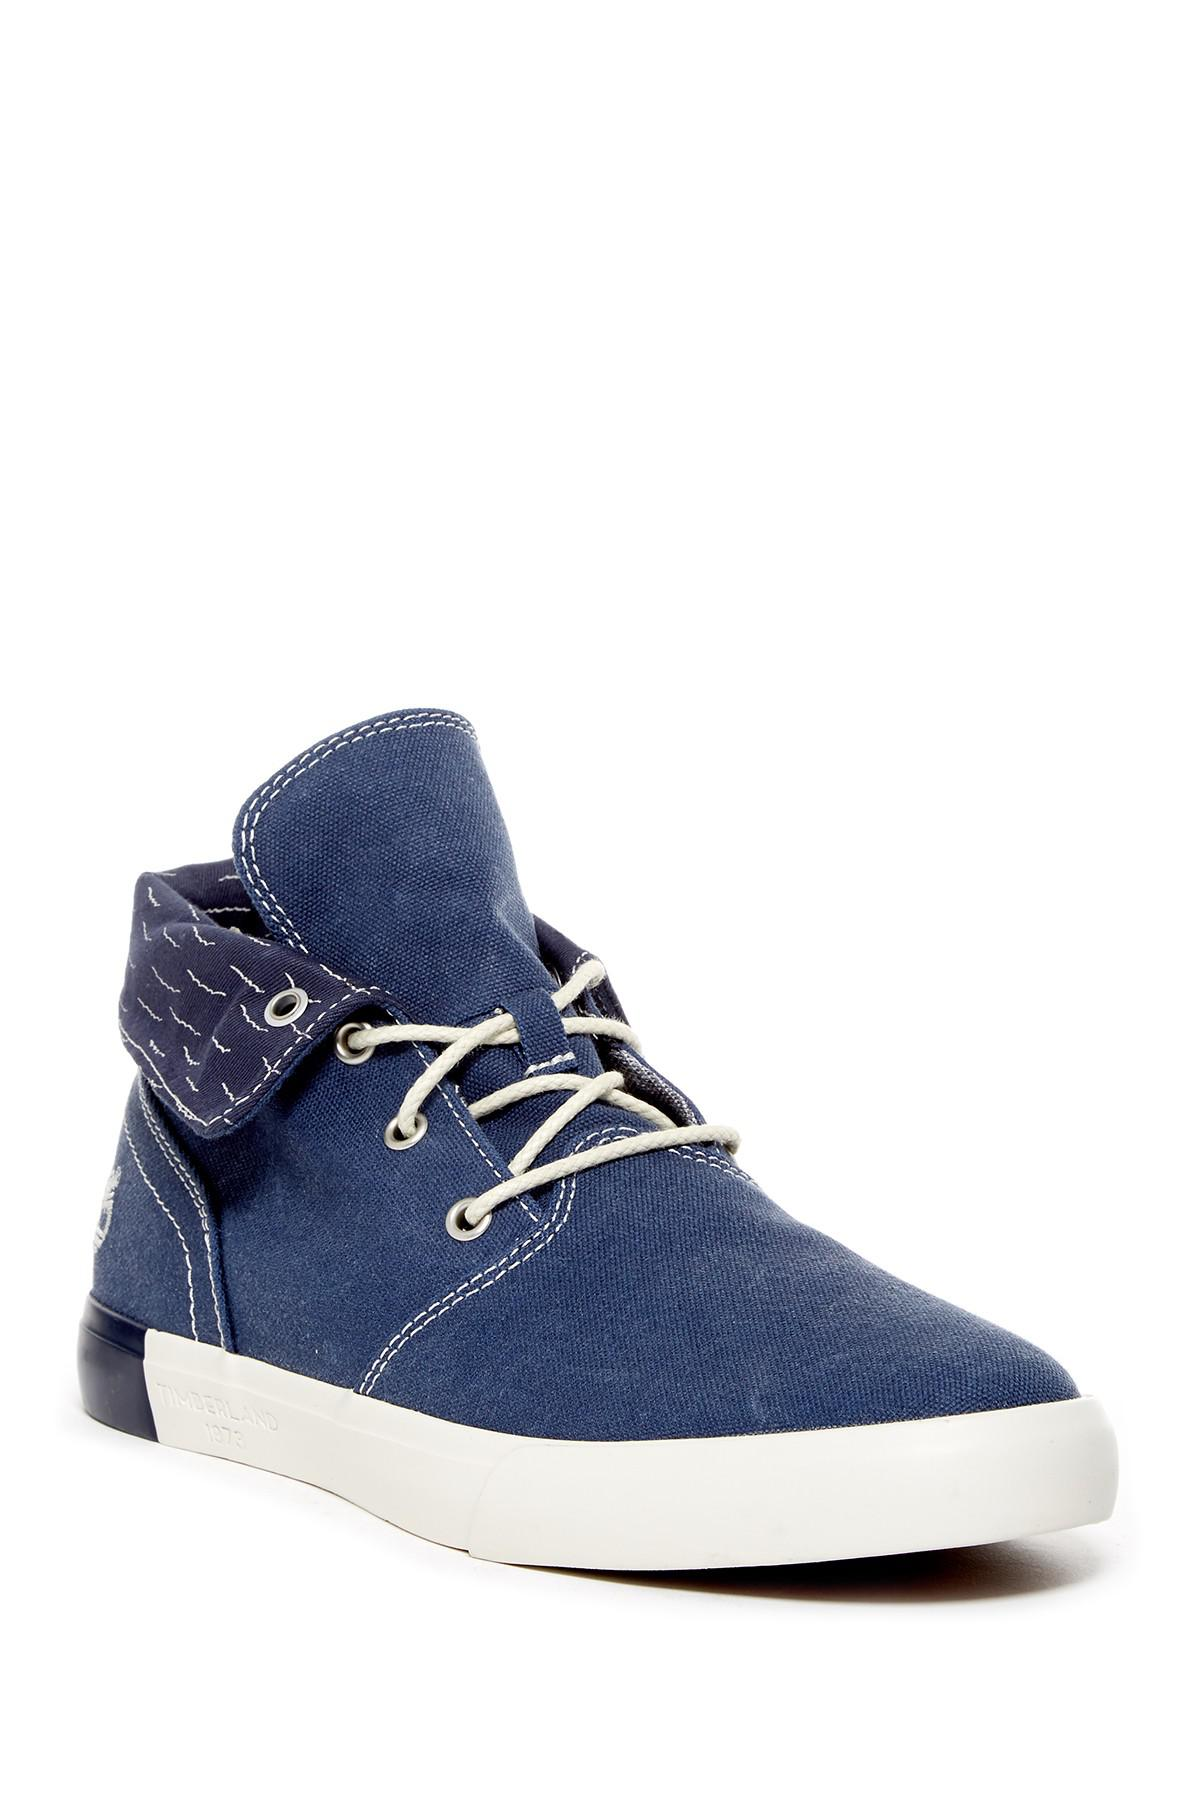 Timberland Union Wharf Canvas Rolltop Sneaker cuyqLof